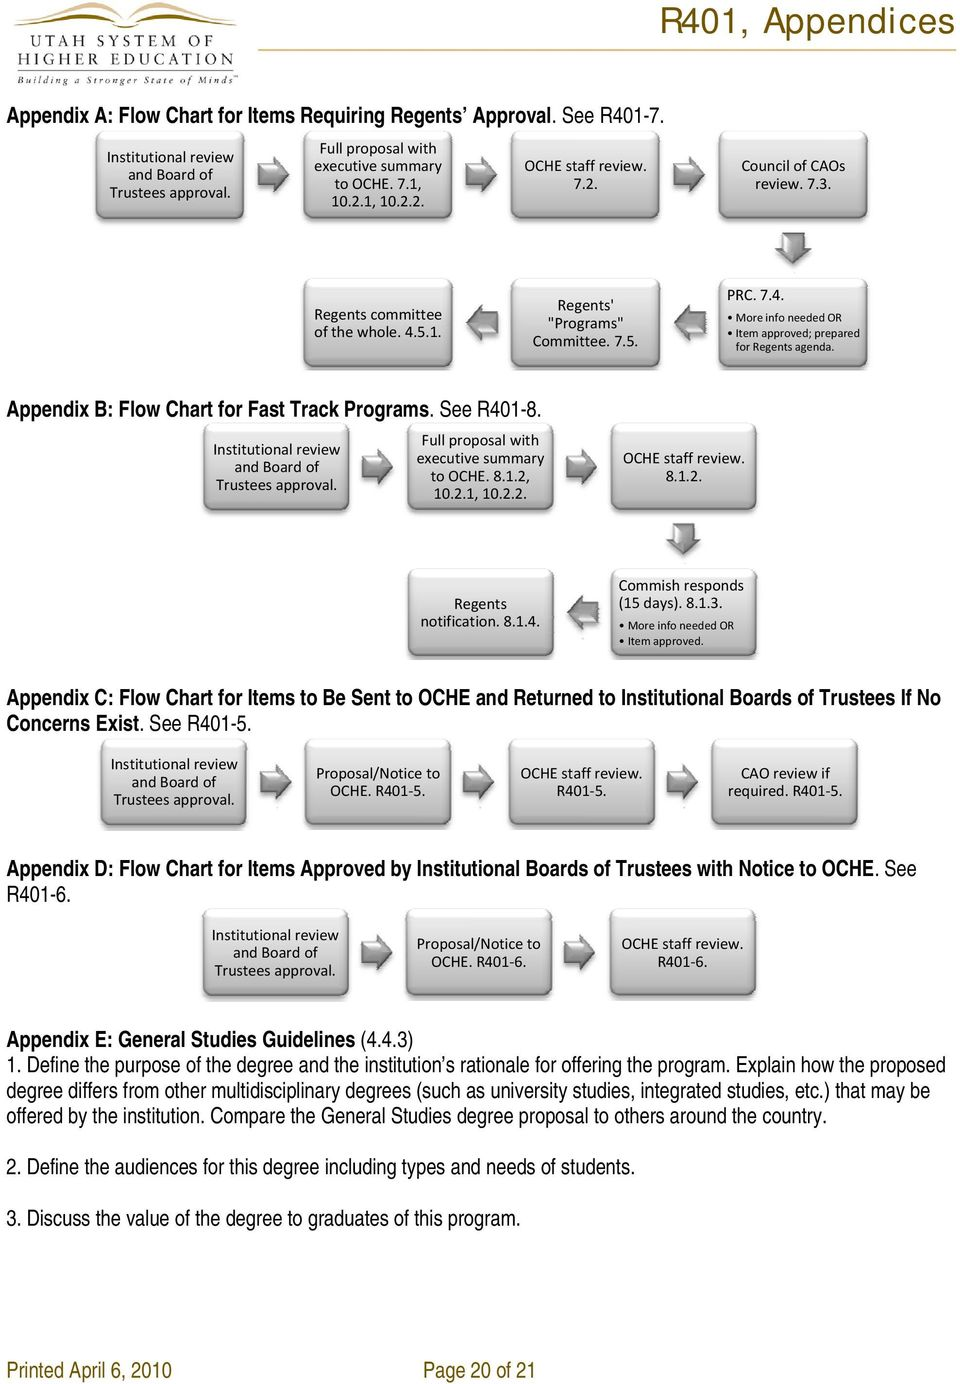 Appendix B: Flow Chart for Fast Track Programs. See R401-8. Institutional review and Board of Trustees approval. Full proposal with executive summary to OCHE. 8.1.2, 10.2.1, 10.2.2. OCHE staff review.